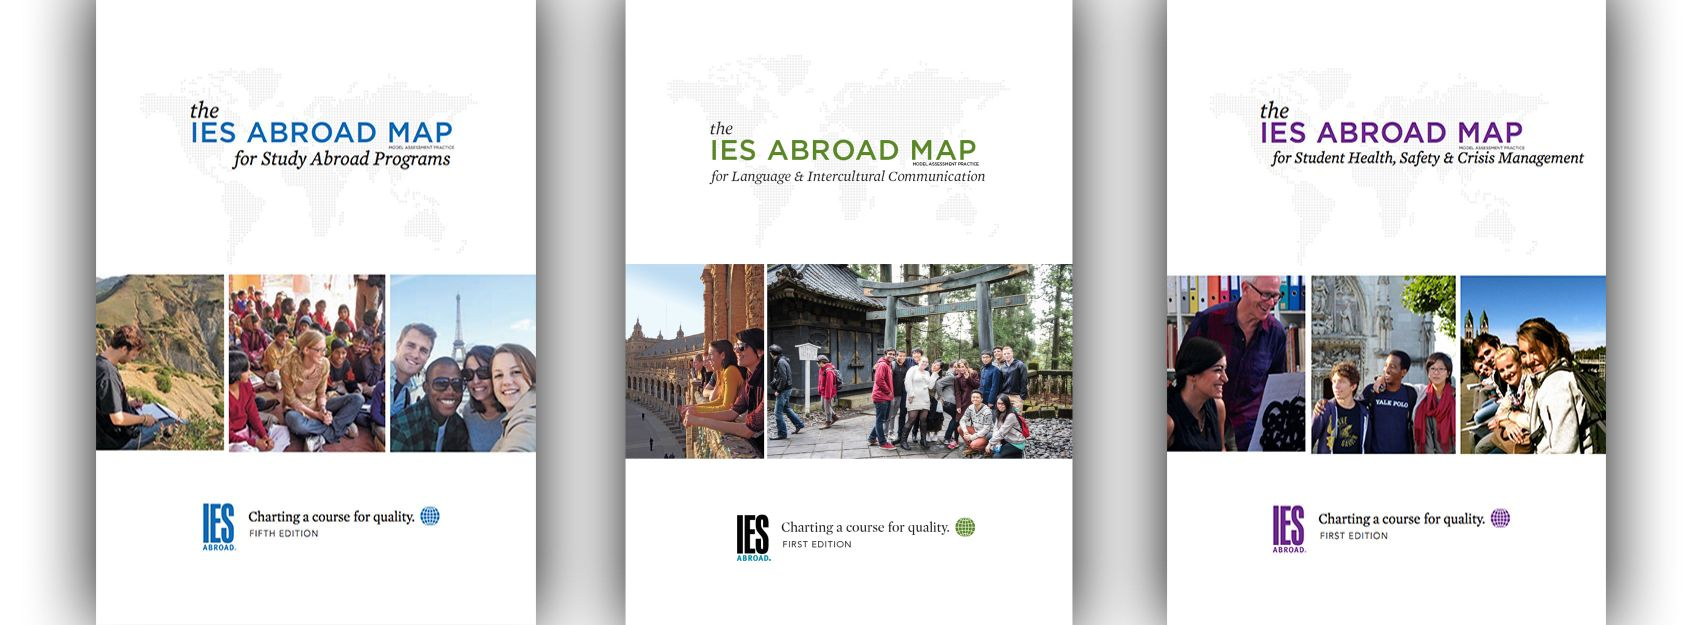 IES Abroad MAP Series Covers